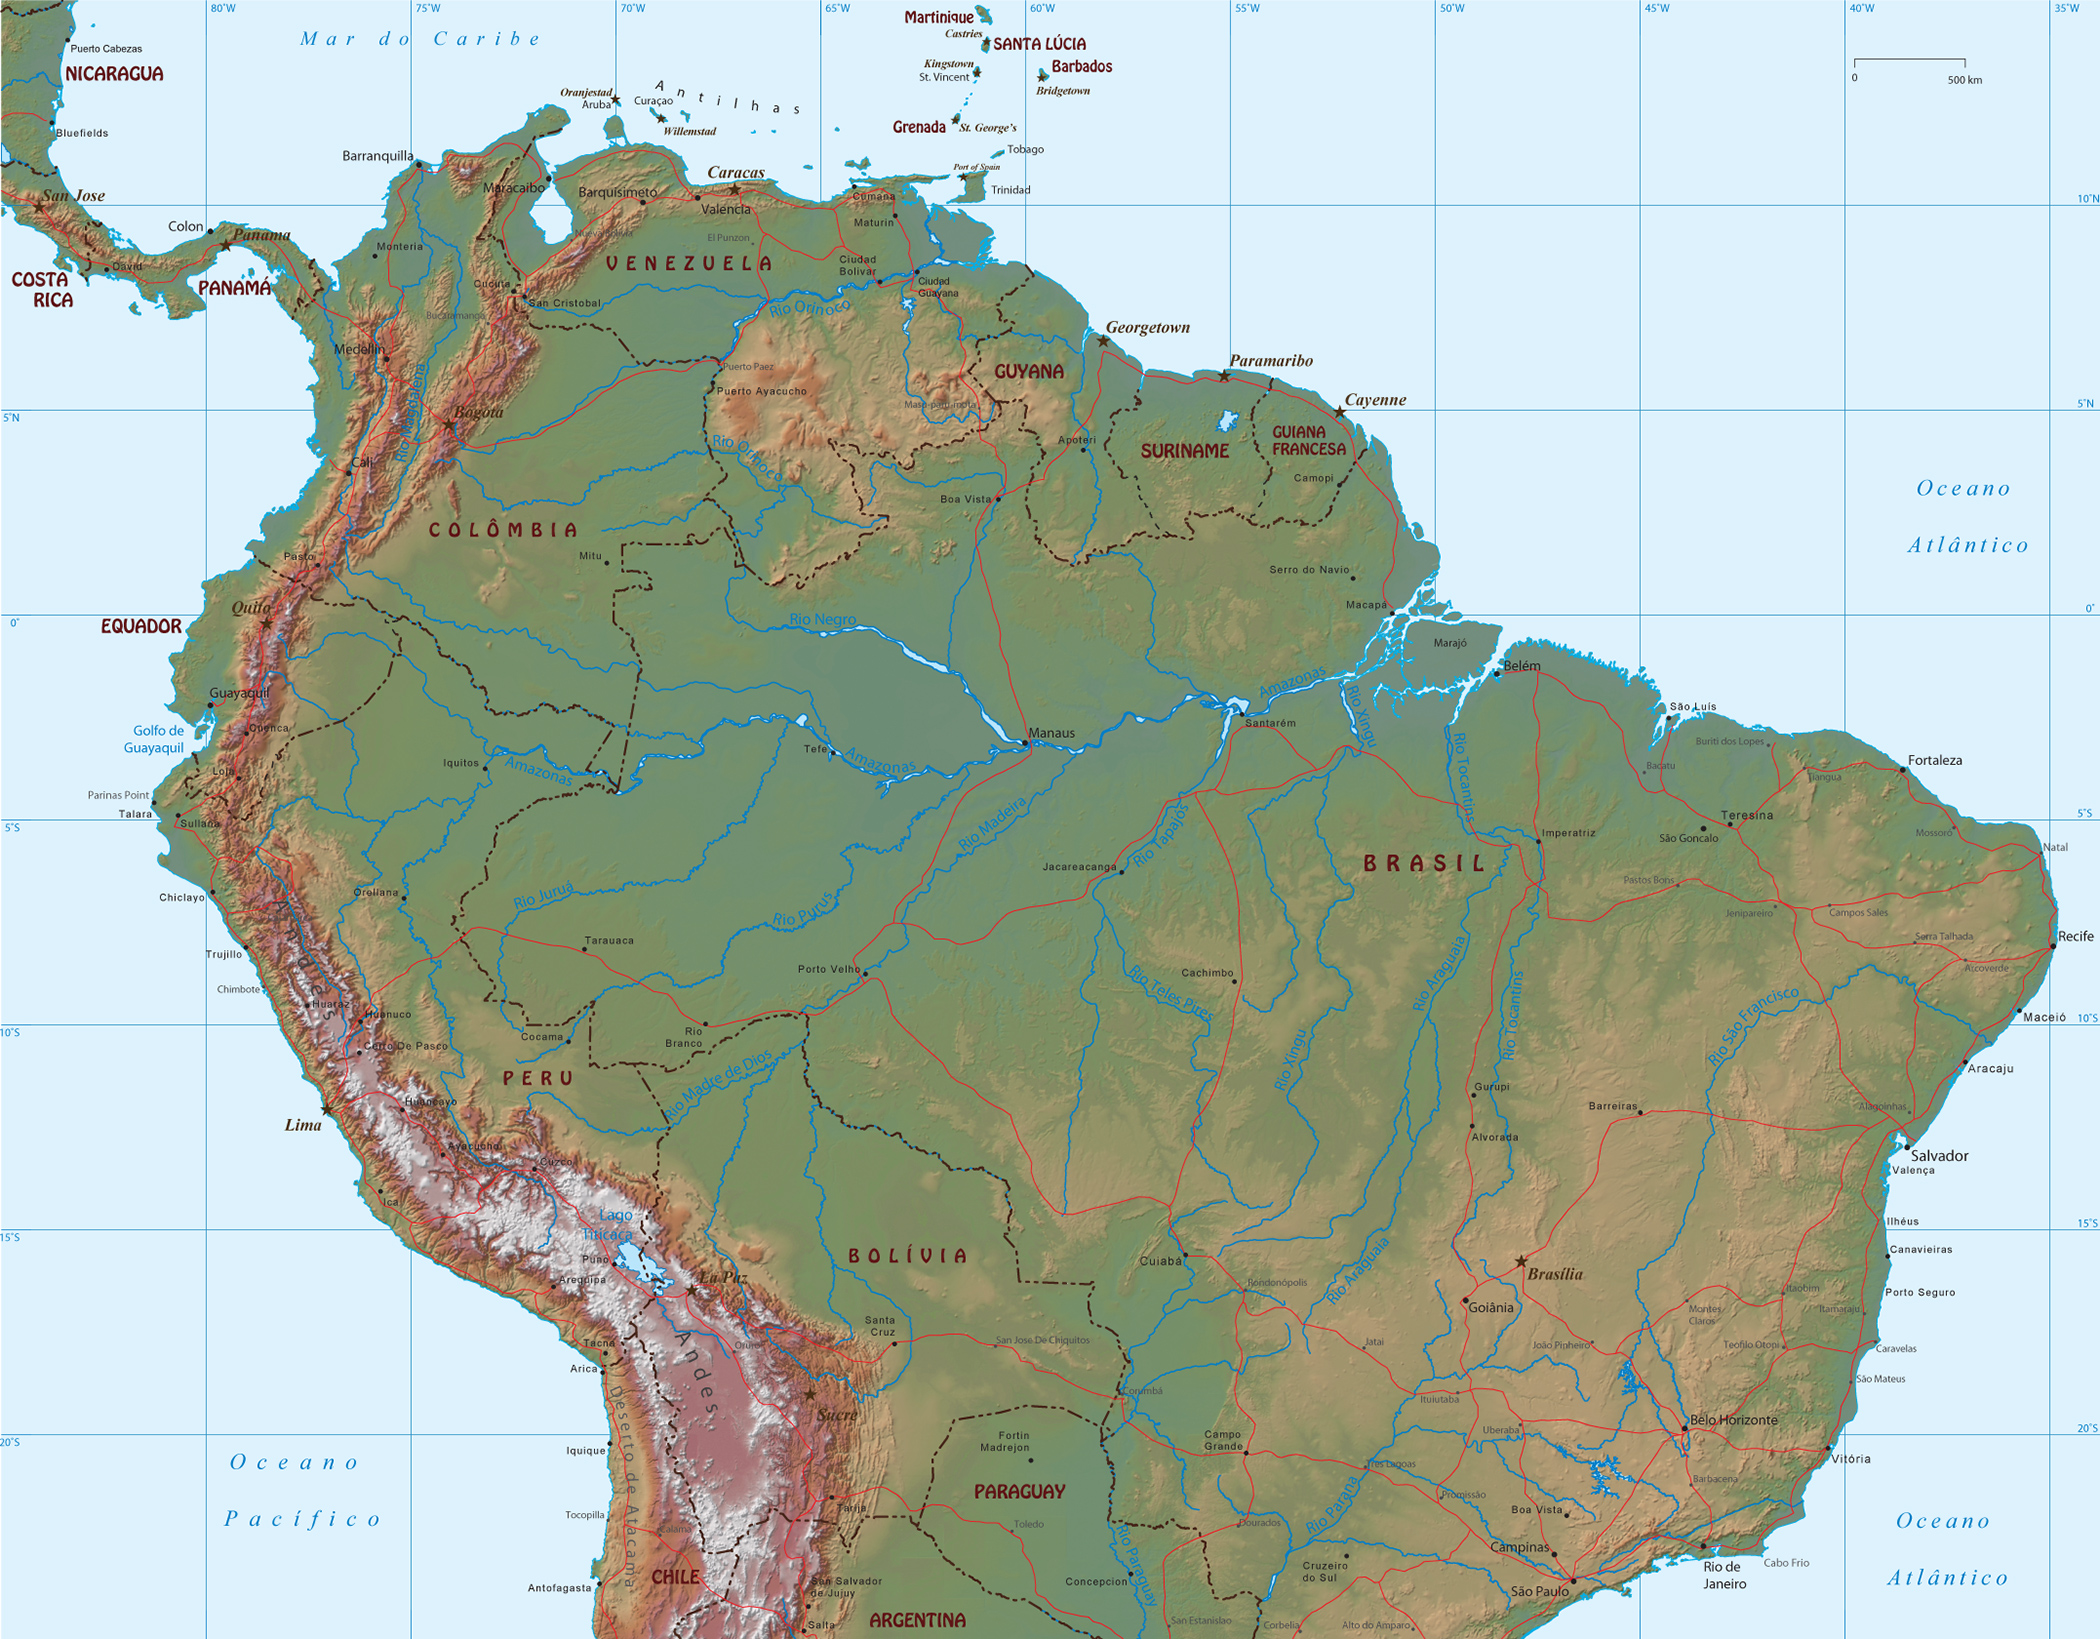 mapas da américa do sul